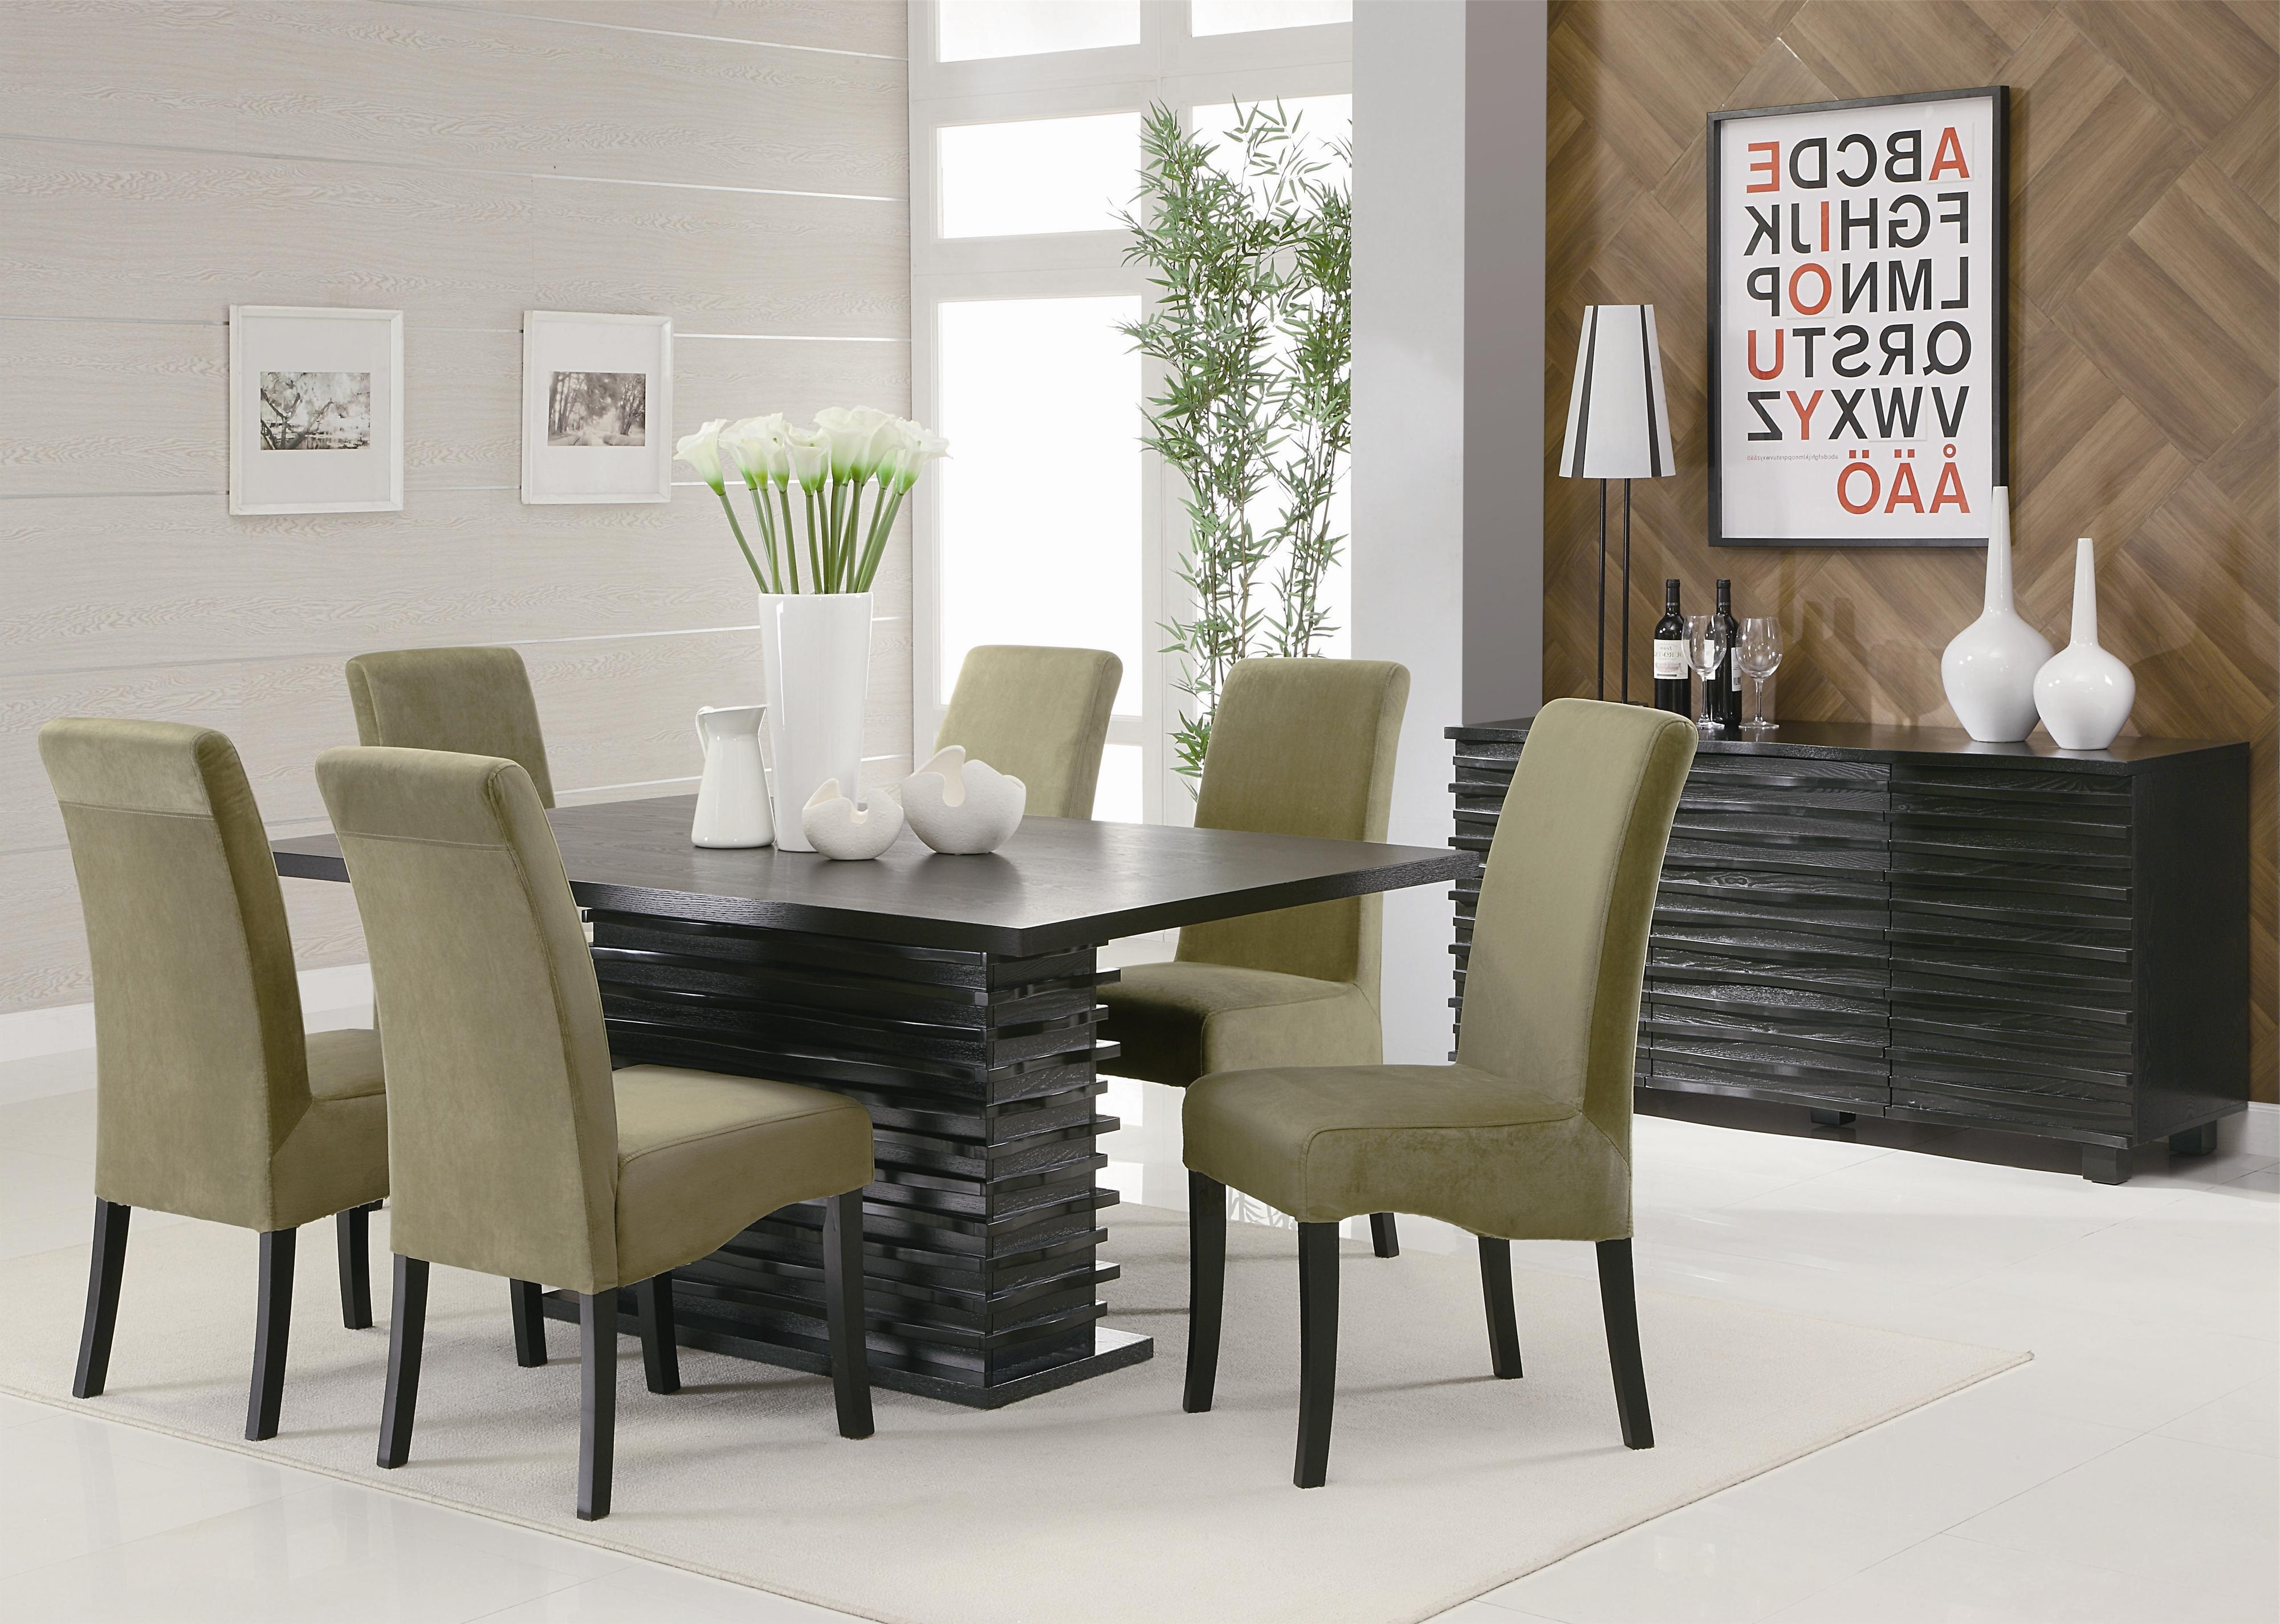 Coaster Stanton Contemporary Dining Table – Coaster Fine Furniture Regarding Most Recently Released Contemporary Dining Room Tables And Chairs (Gallery 13 of 25)